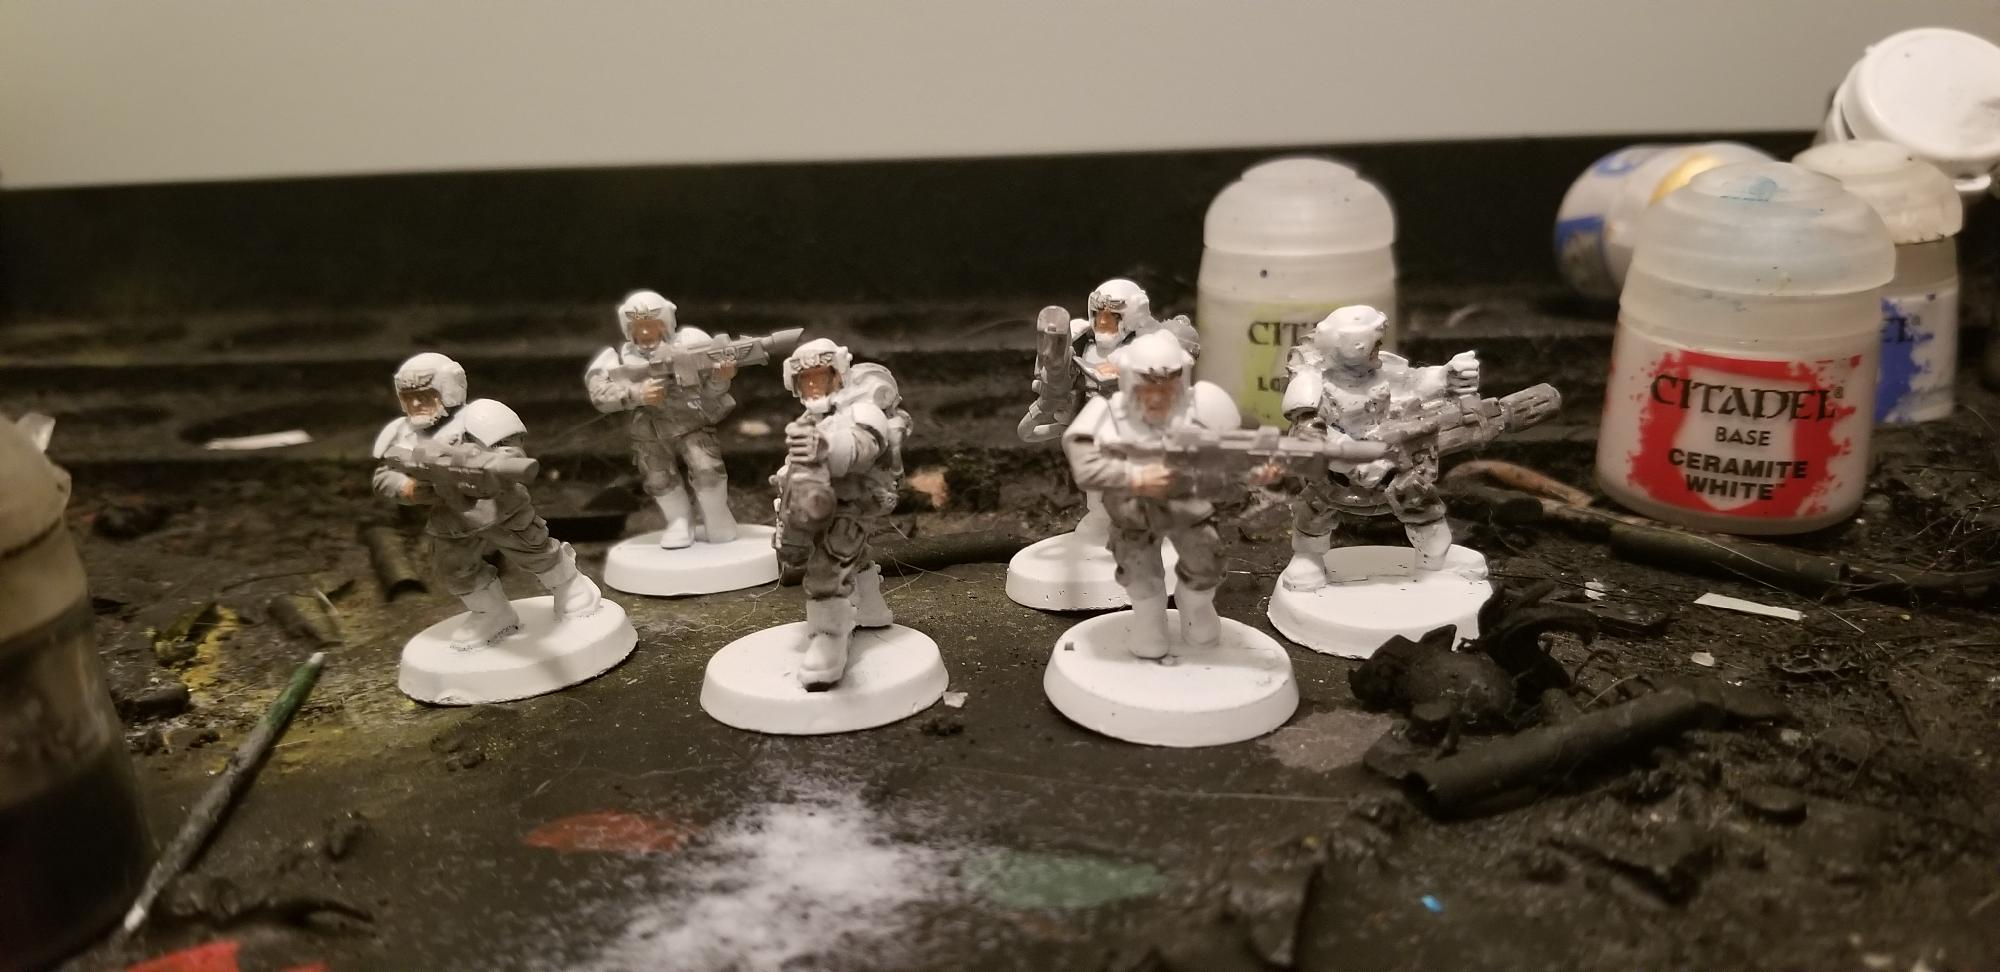 Second weapon squad